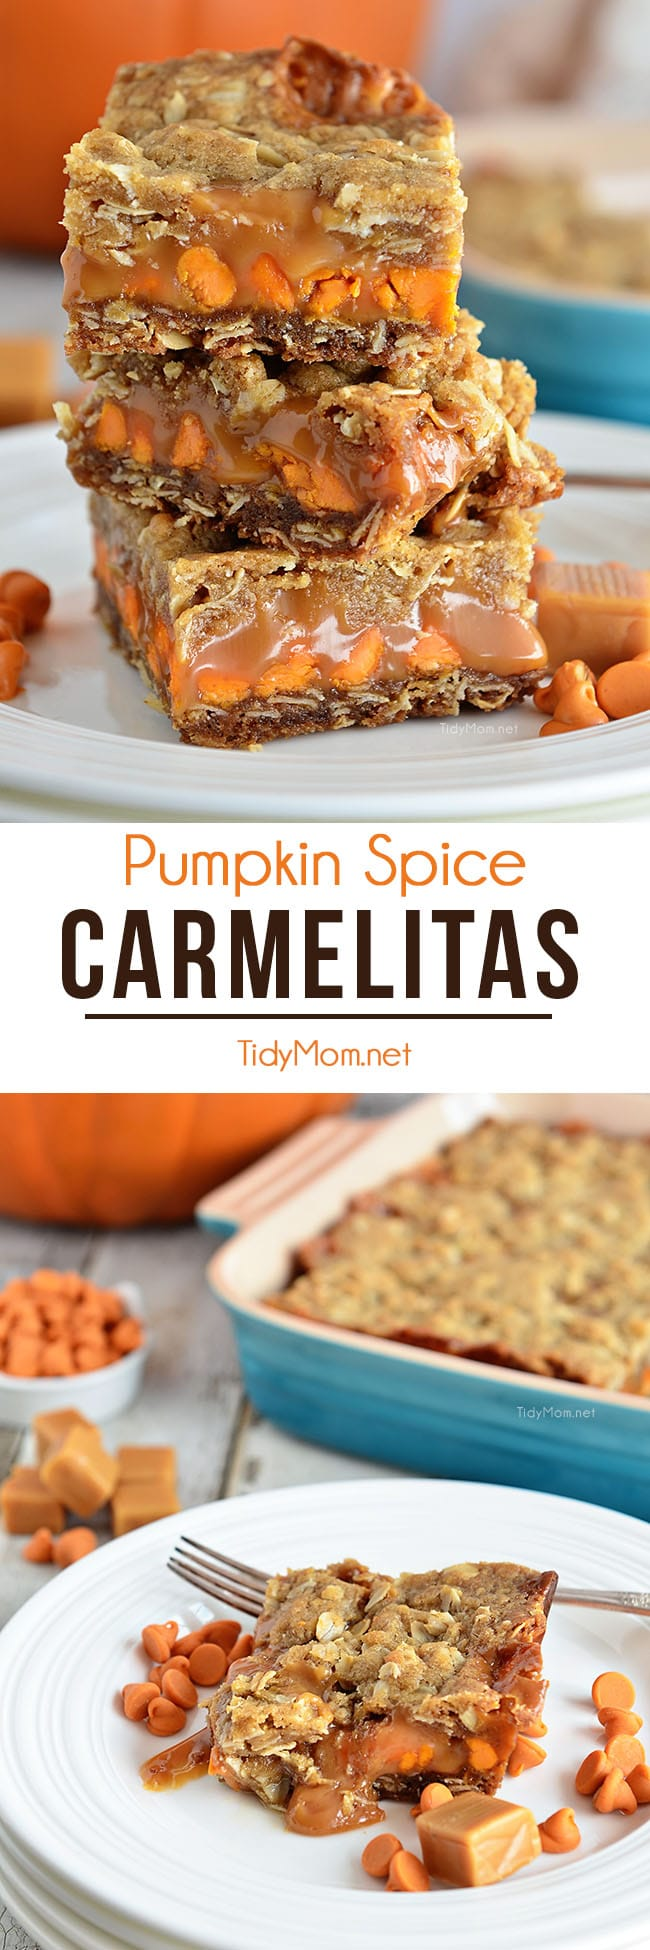 Whether for dinner guests, an after-school snack, or even a late night treat, these Pumpkin Spice Carmelita Bars are the perfect way to satisfy a sweet tooth. Find the printable recipe + how-to video at TidyMom.net #carmelitas #pumpkin #pumpkinrecipes #pumpkinspice #dessert #fall